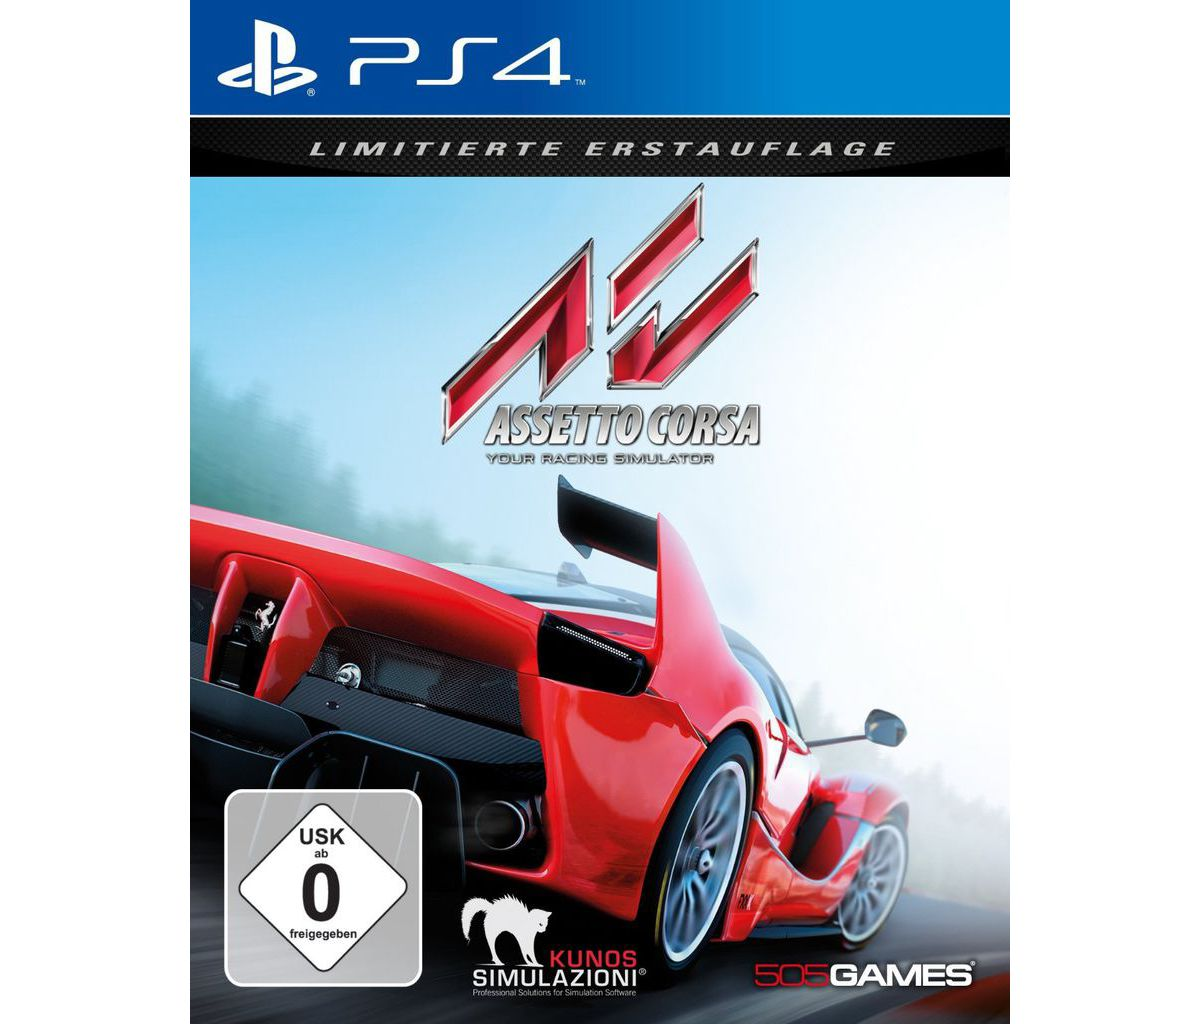 505 Games Playstation 4 - Spiel »Assetto Corsa«